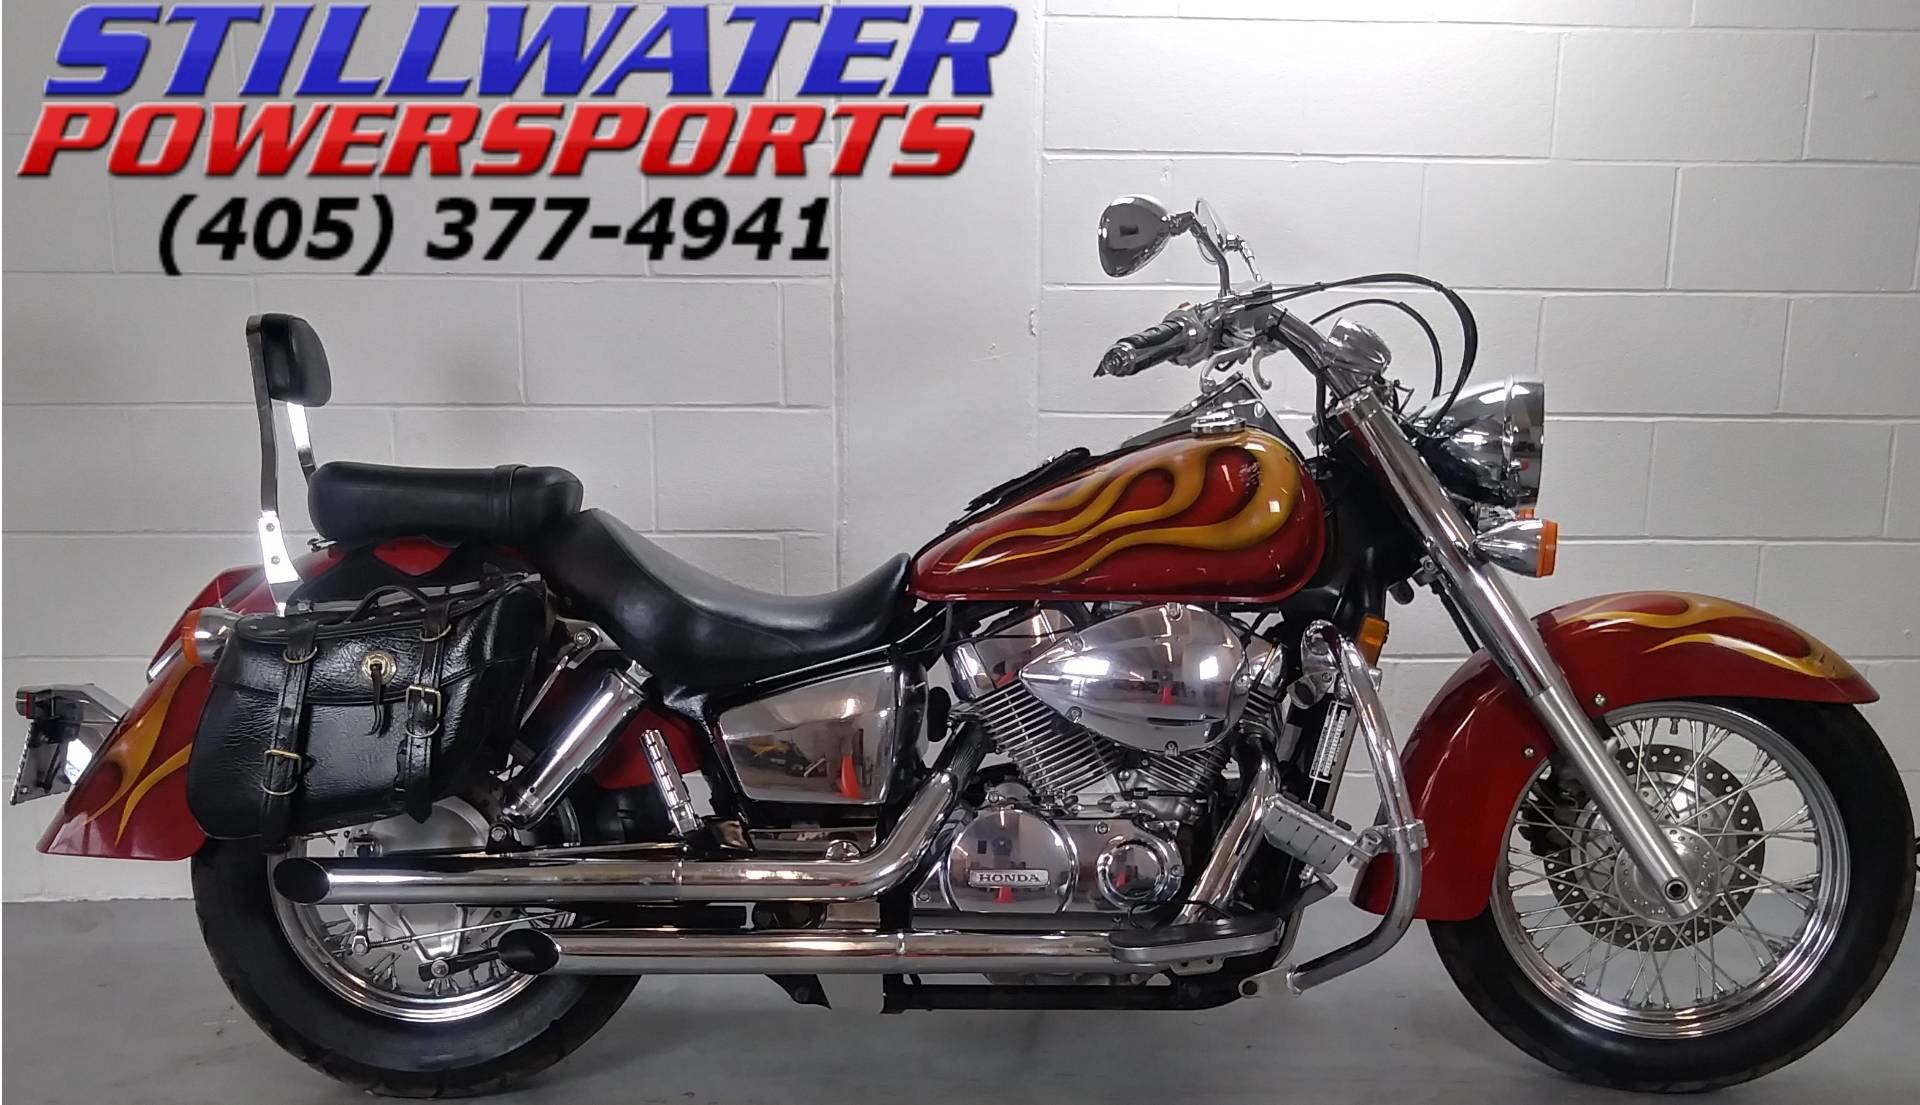 2004 Honda Shadow Aero in Stillwater, Oklahoma - Photo 1